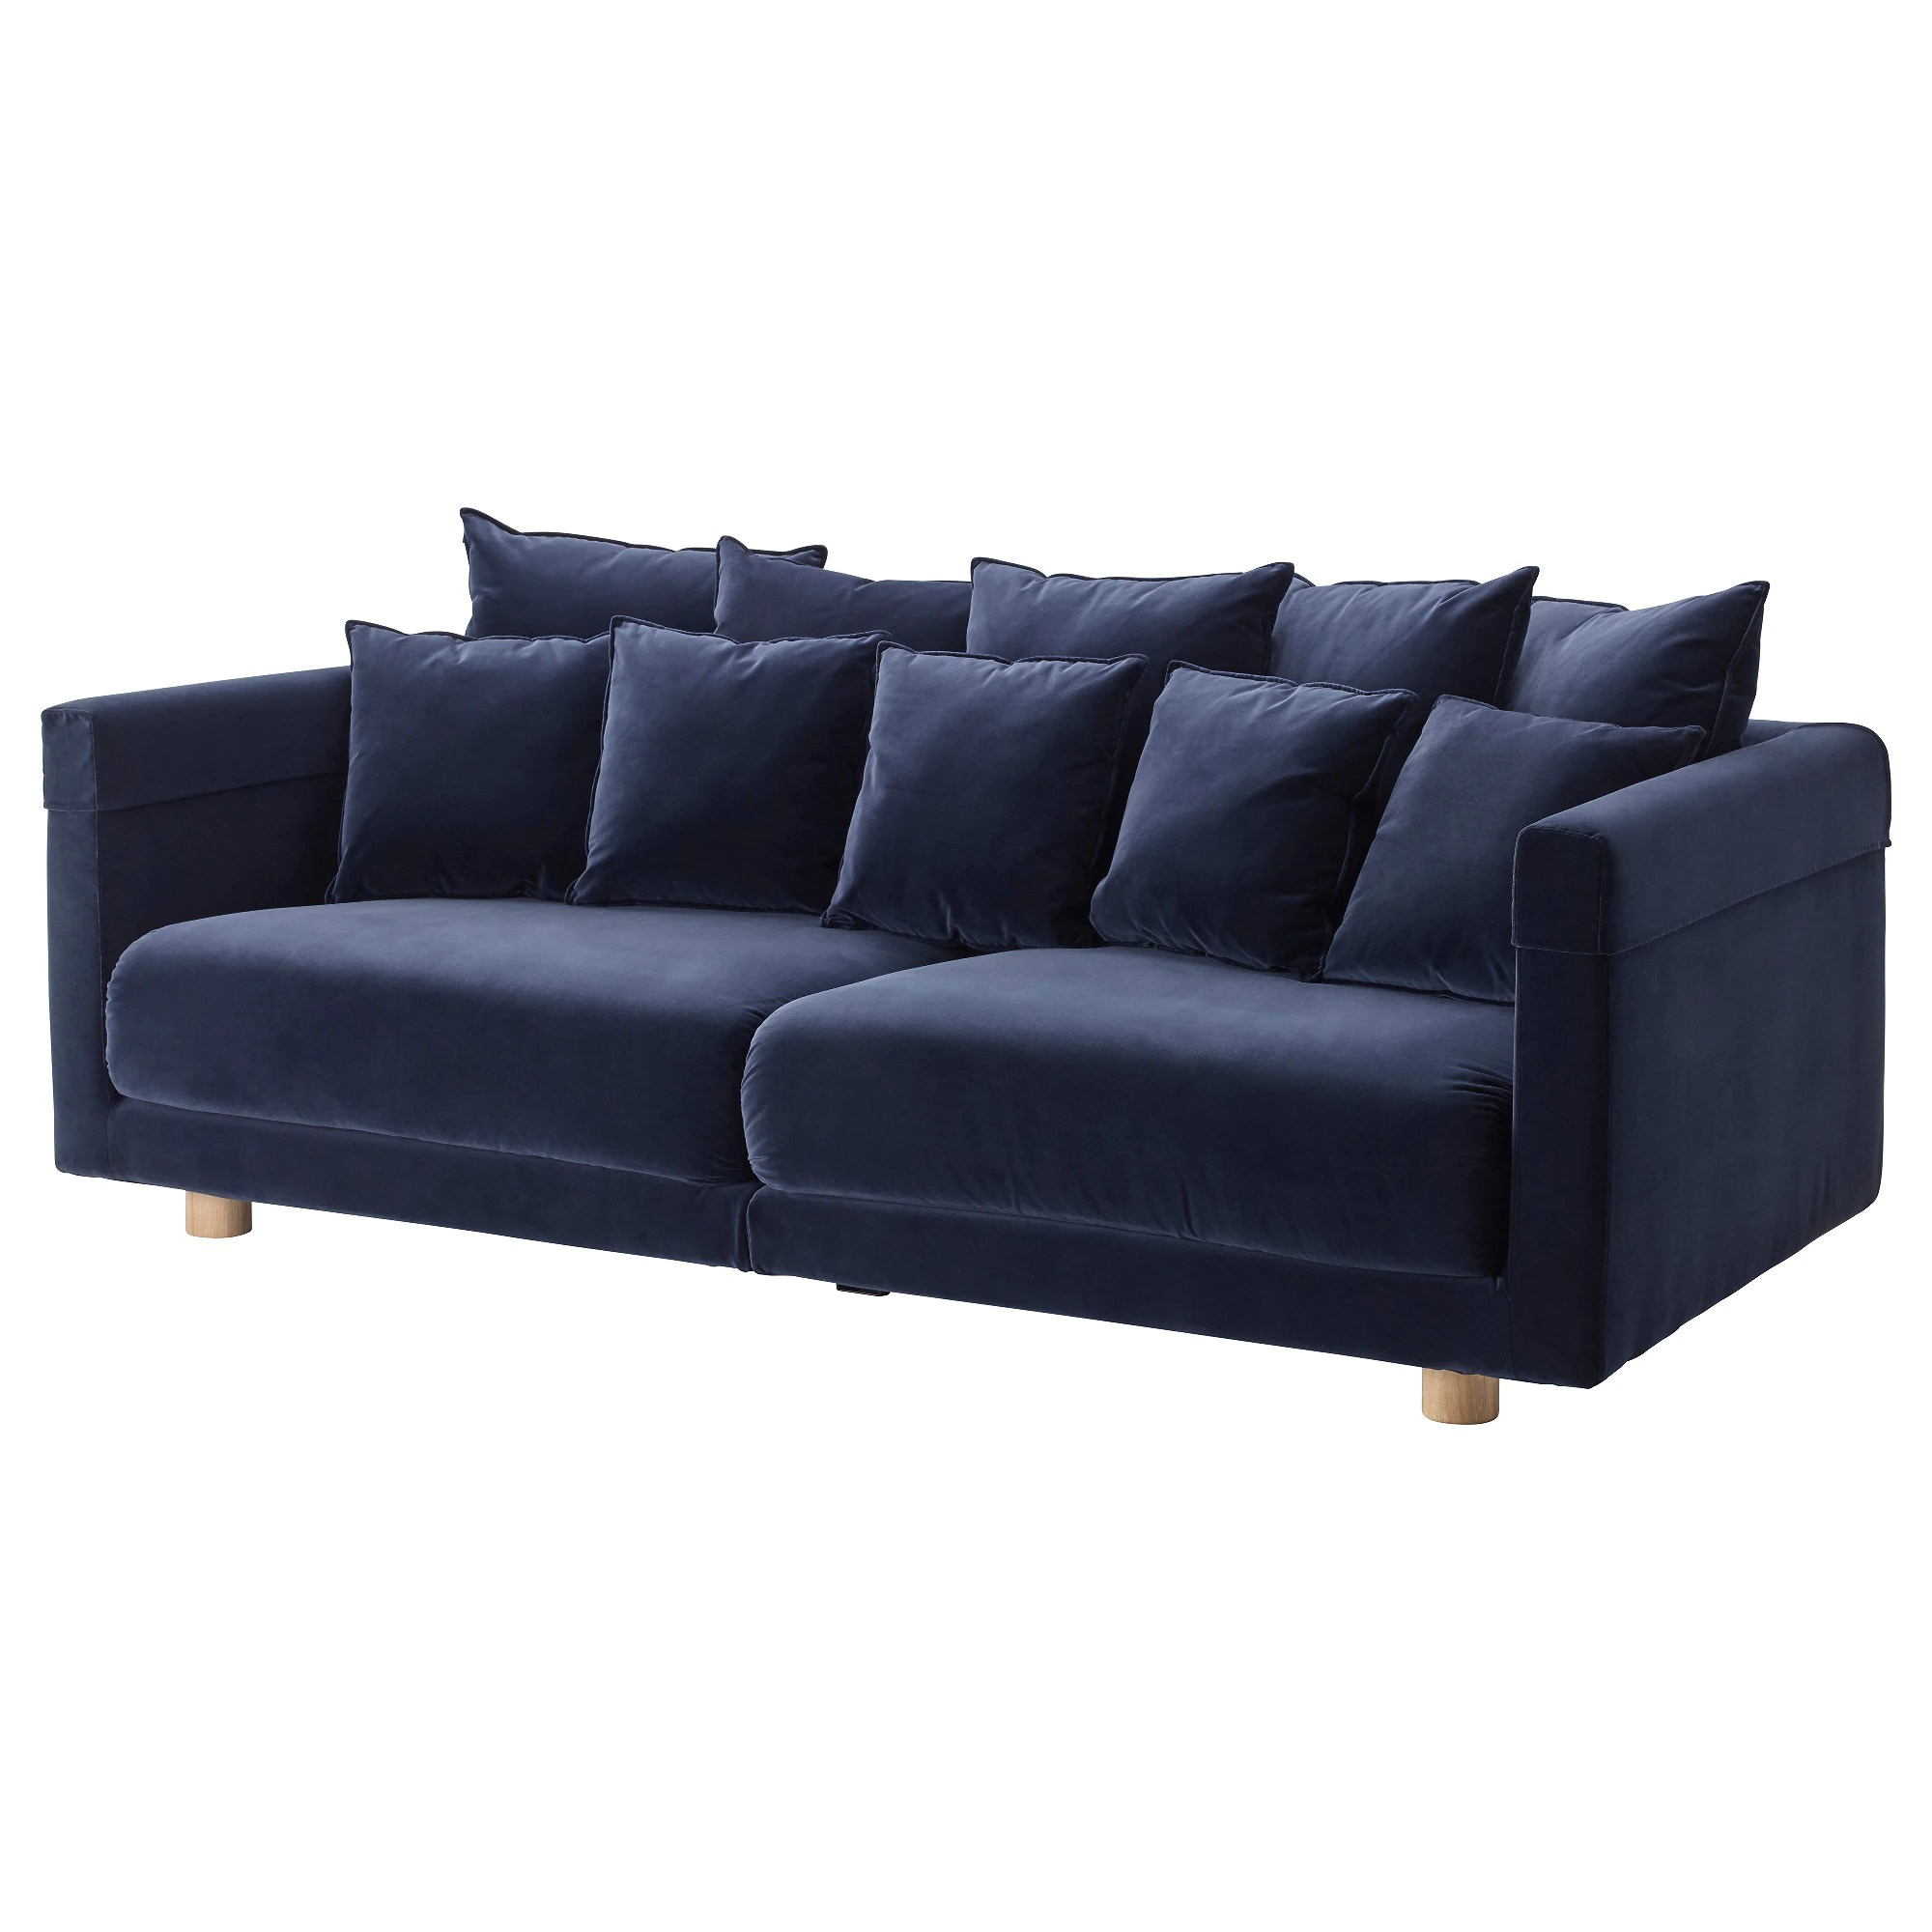 Couches In Ikea Sofa Stockholm 2017 Sandbacka Dark Blue